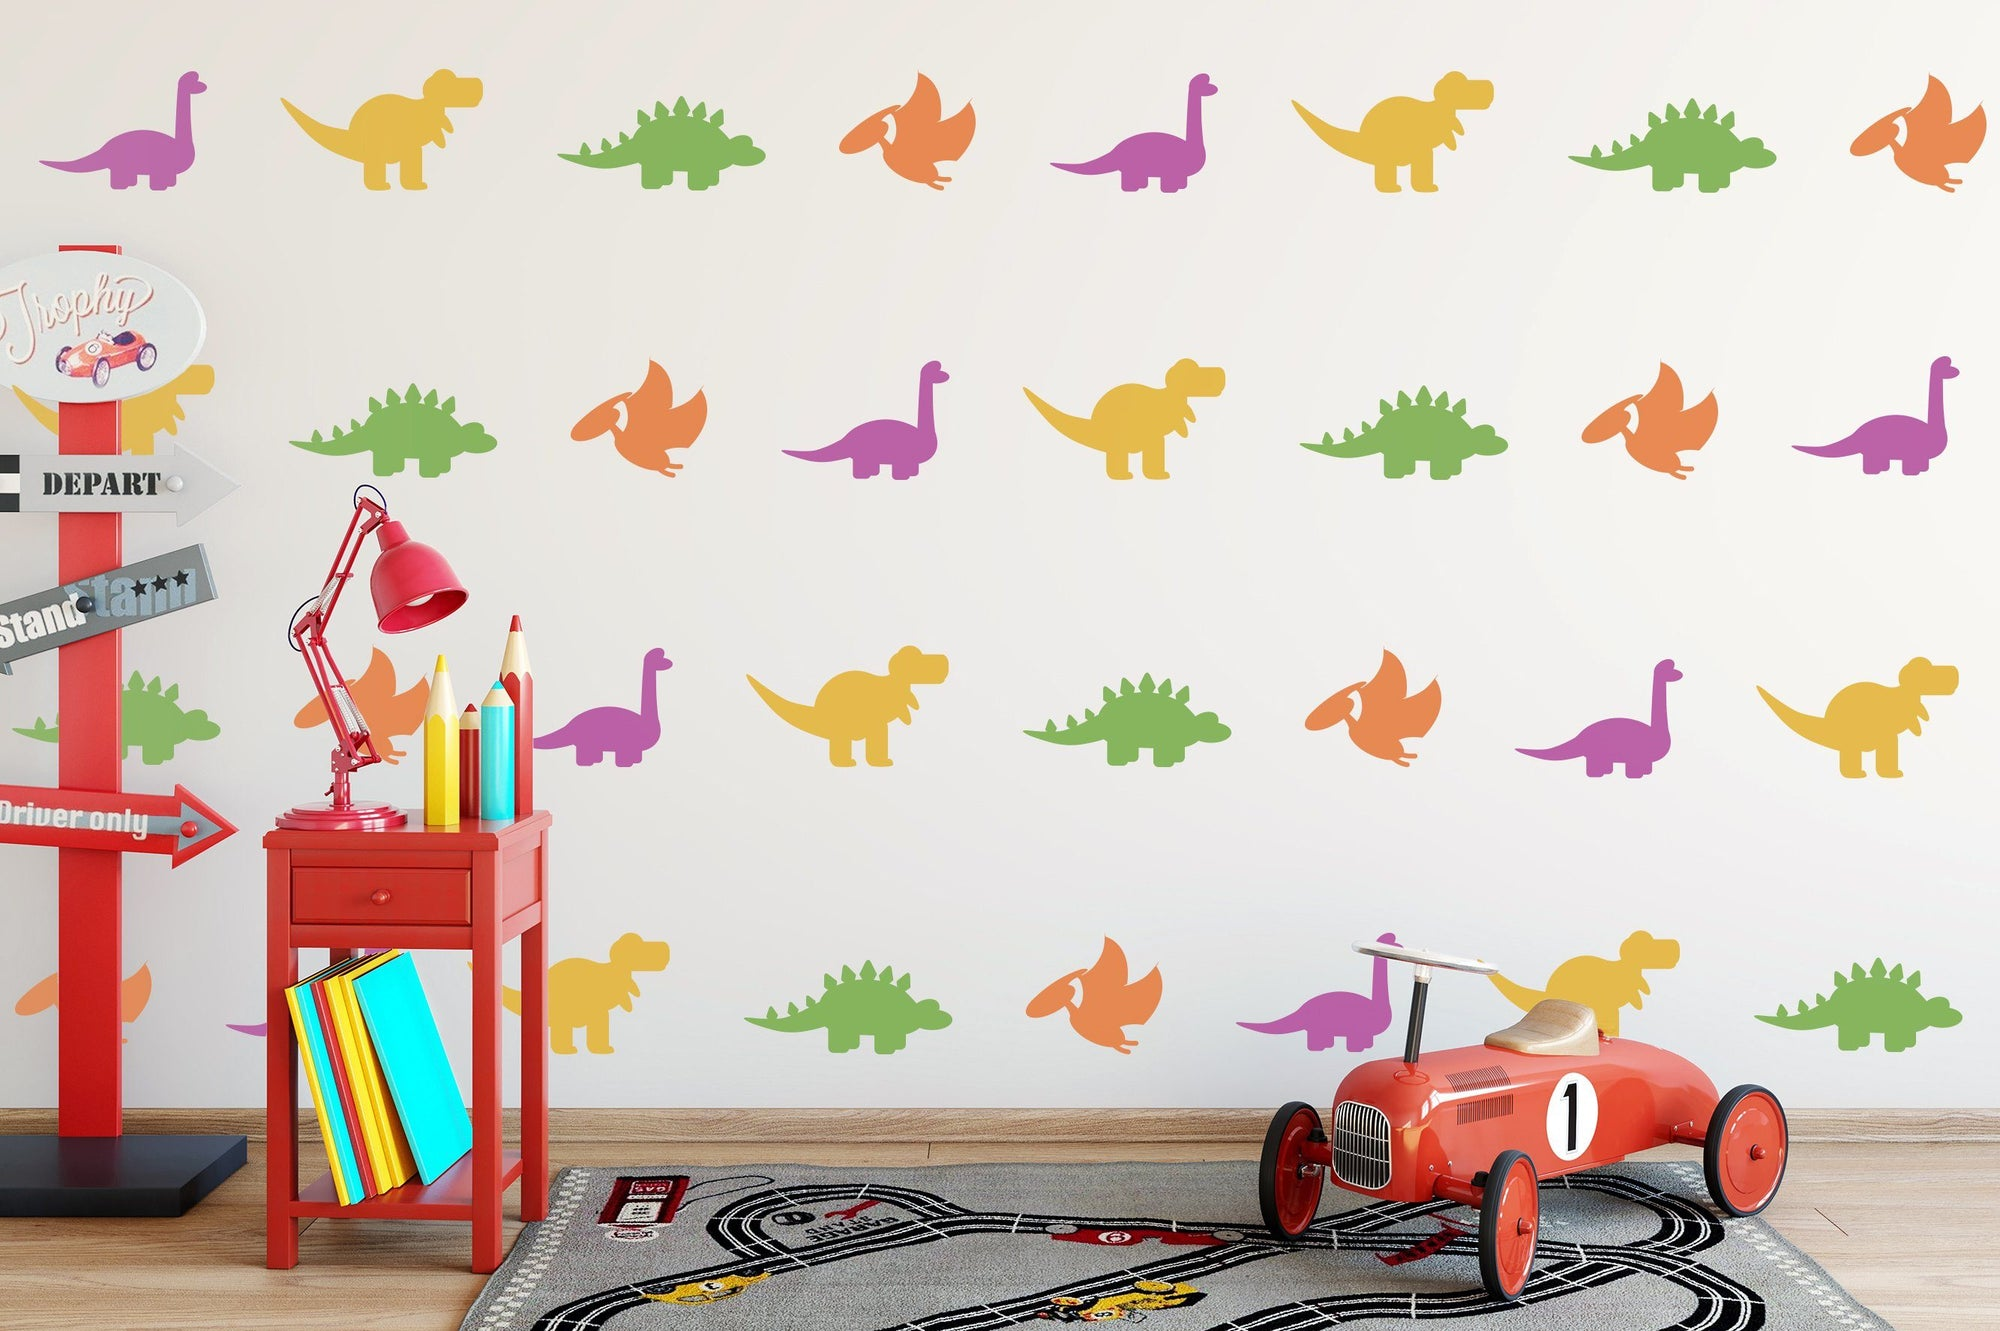 Dinosaur Nursery Wall Art - Vinyl Wall Decals For Nurseries, Children's Rooms, And Home Decor